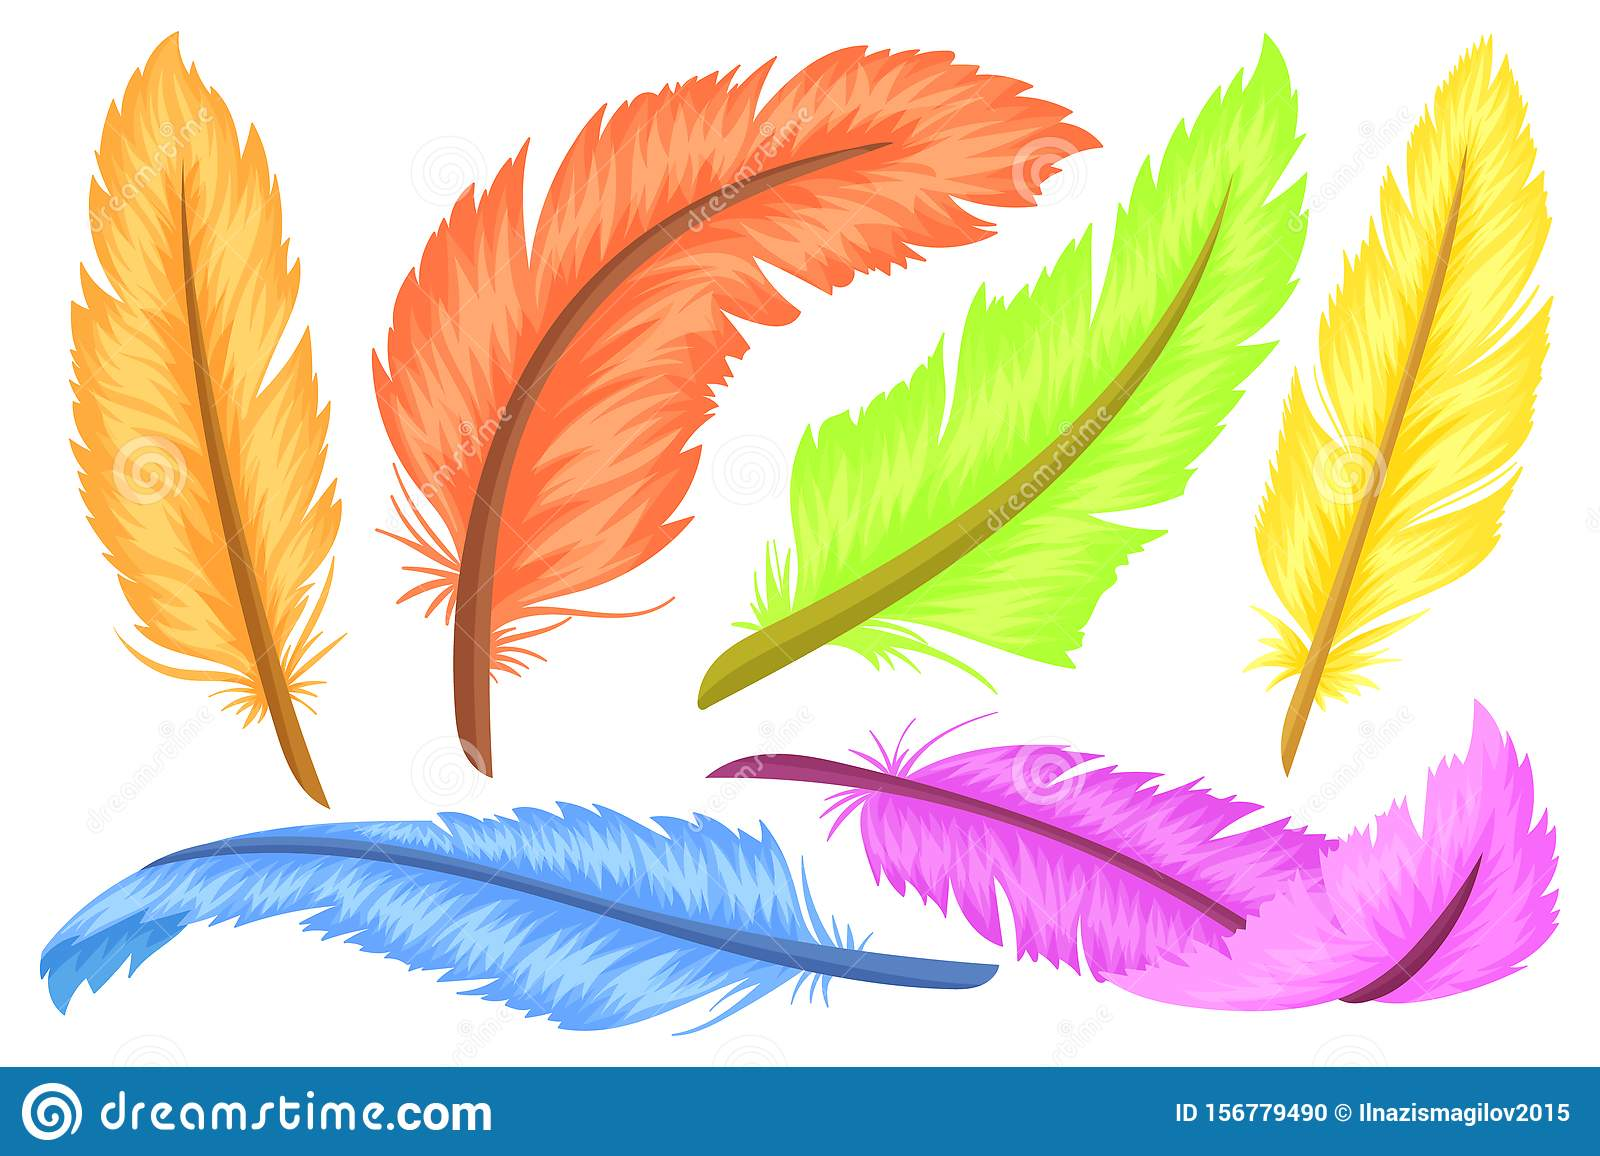 Set Of Colorful Feathers Different Shapes And Colors